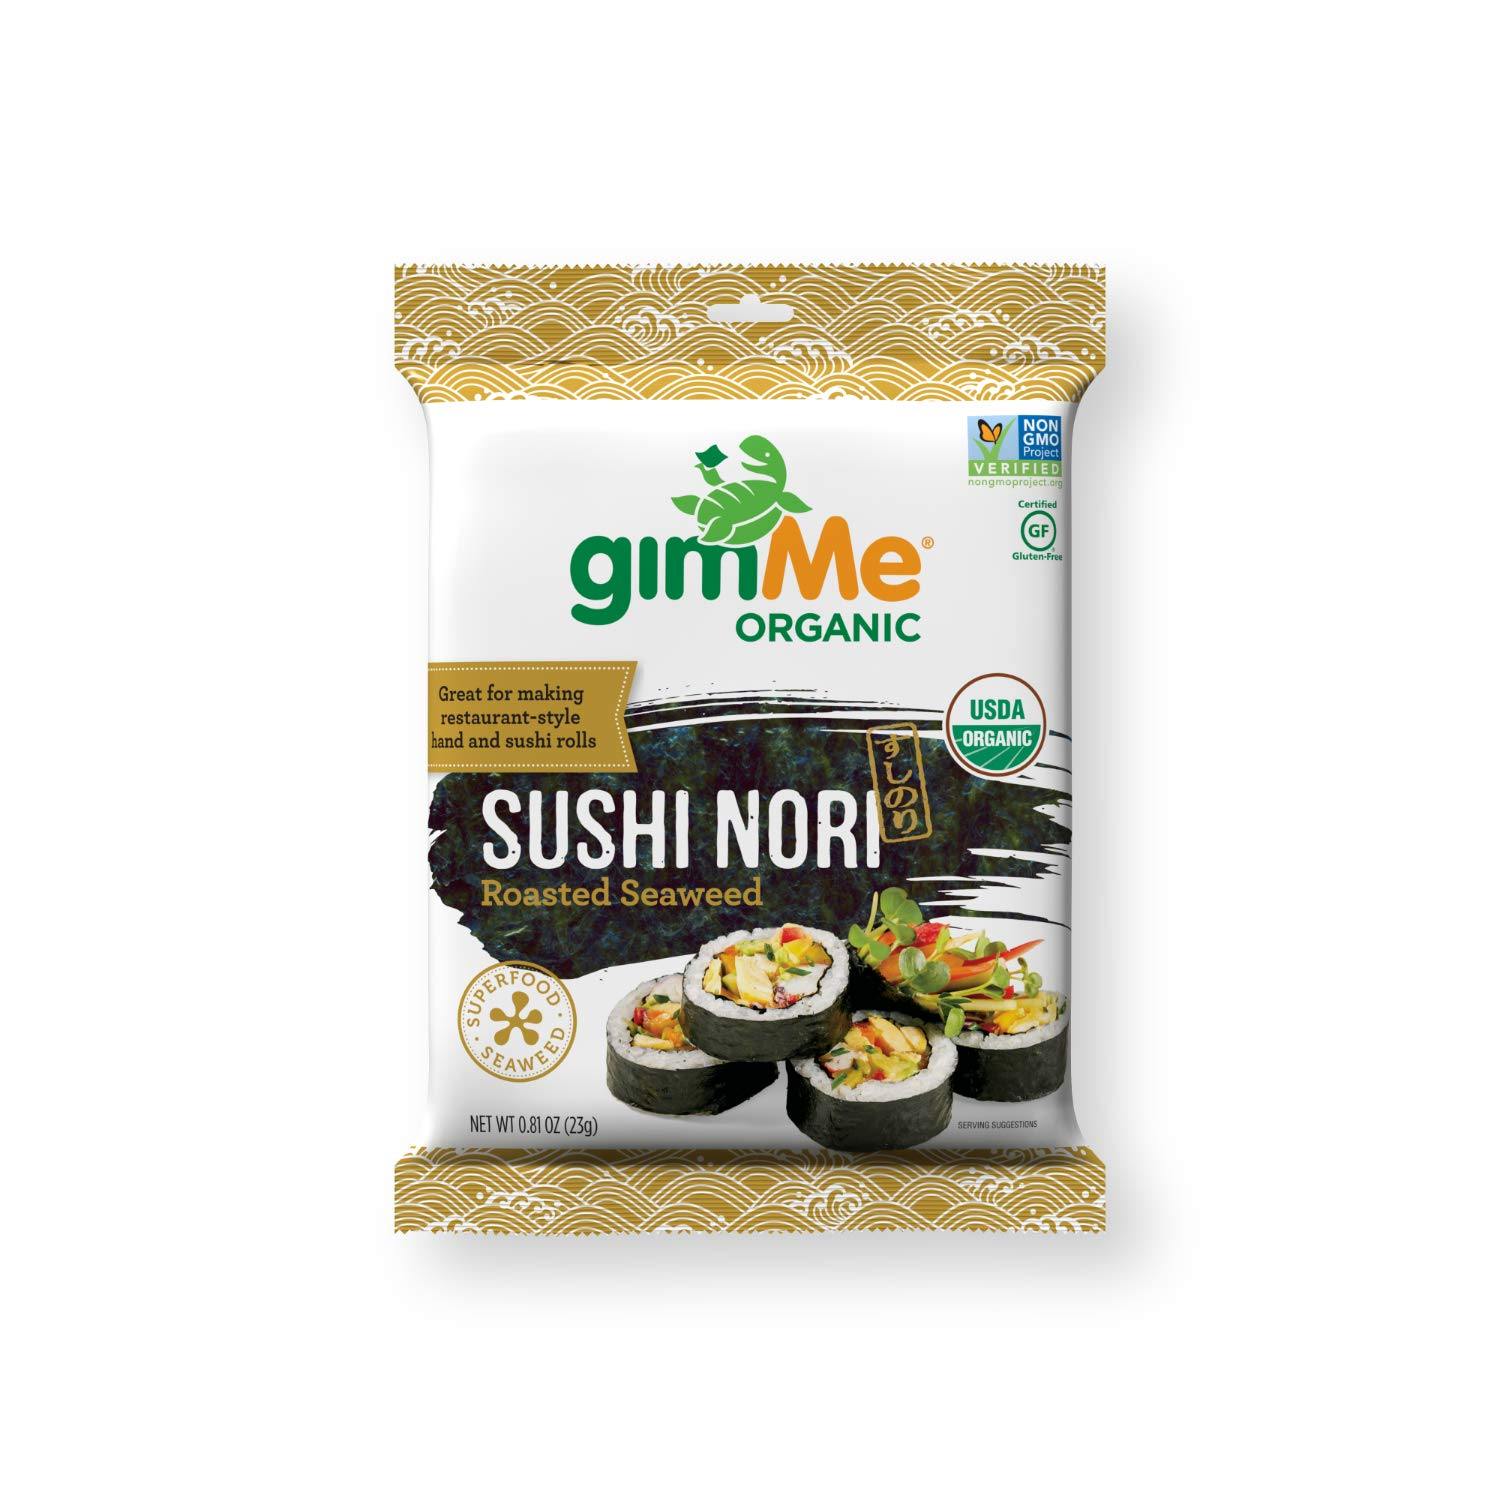 gimMe Organic Roasted Seaweed - Restaurant-style Sushi Nori Sheets - 0.81 Ounce